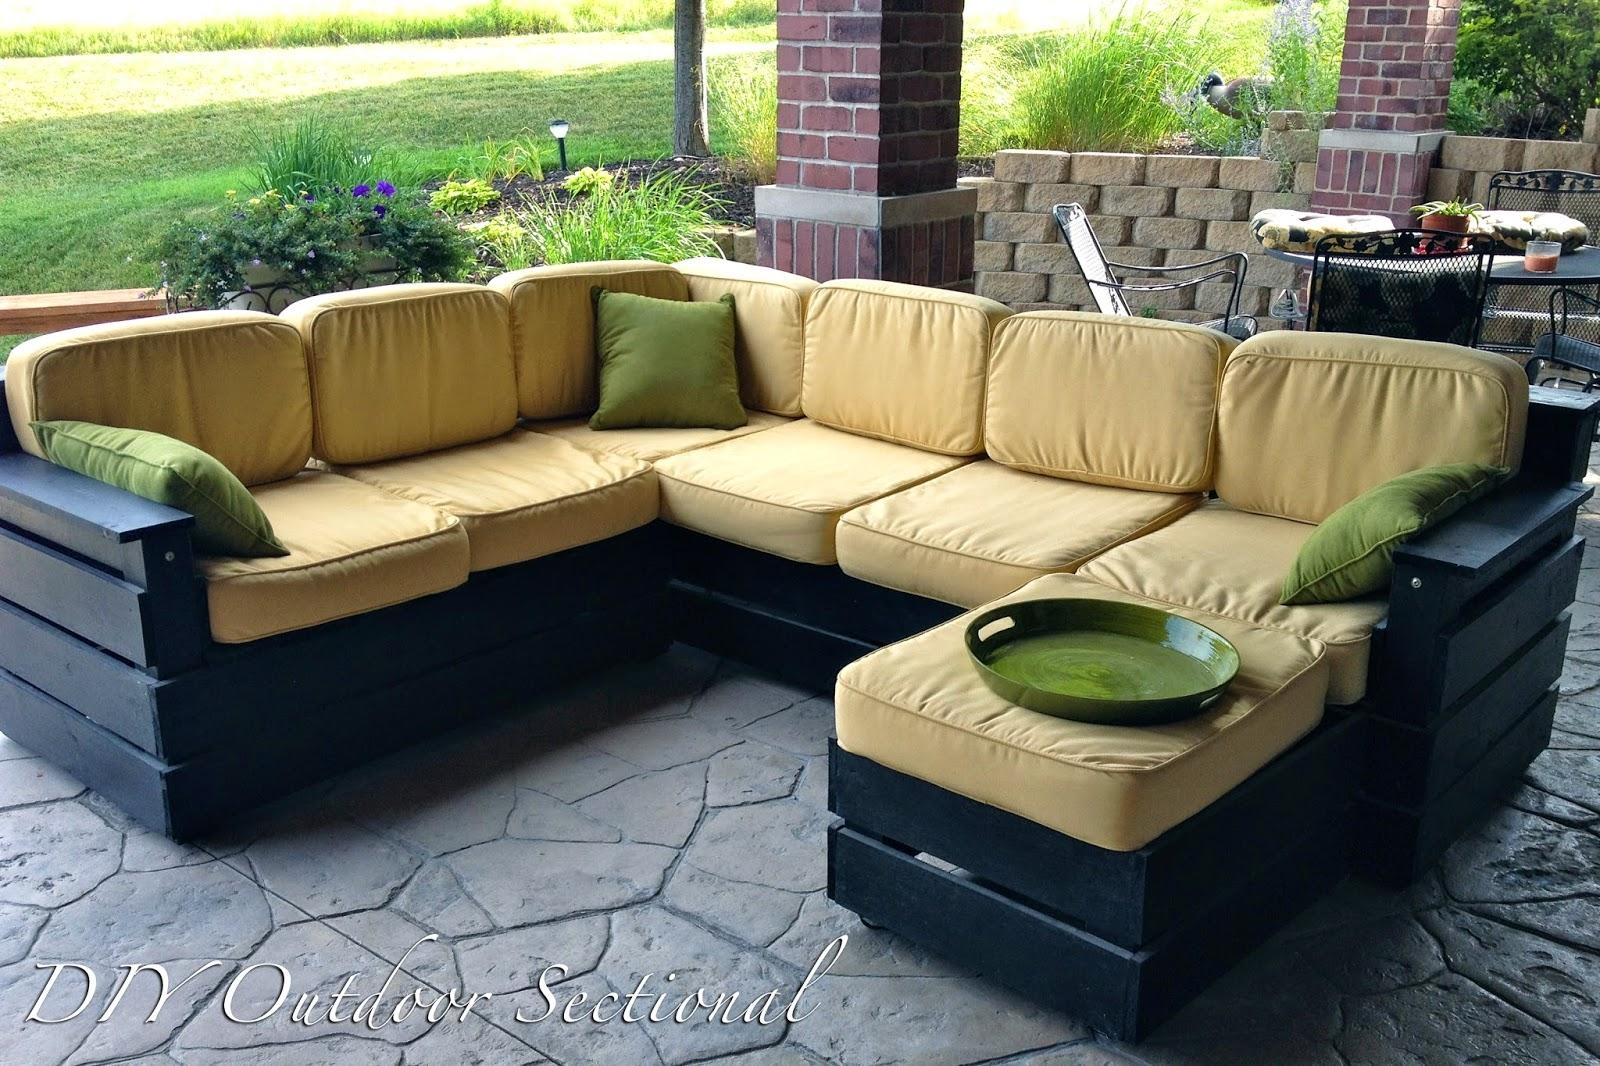 Patio, Diy Patio Sectional | Pythonet Home Furniture In Cheap Patio Sofas (View 14 of 22)